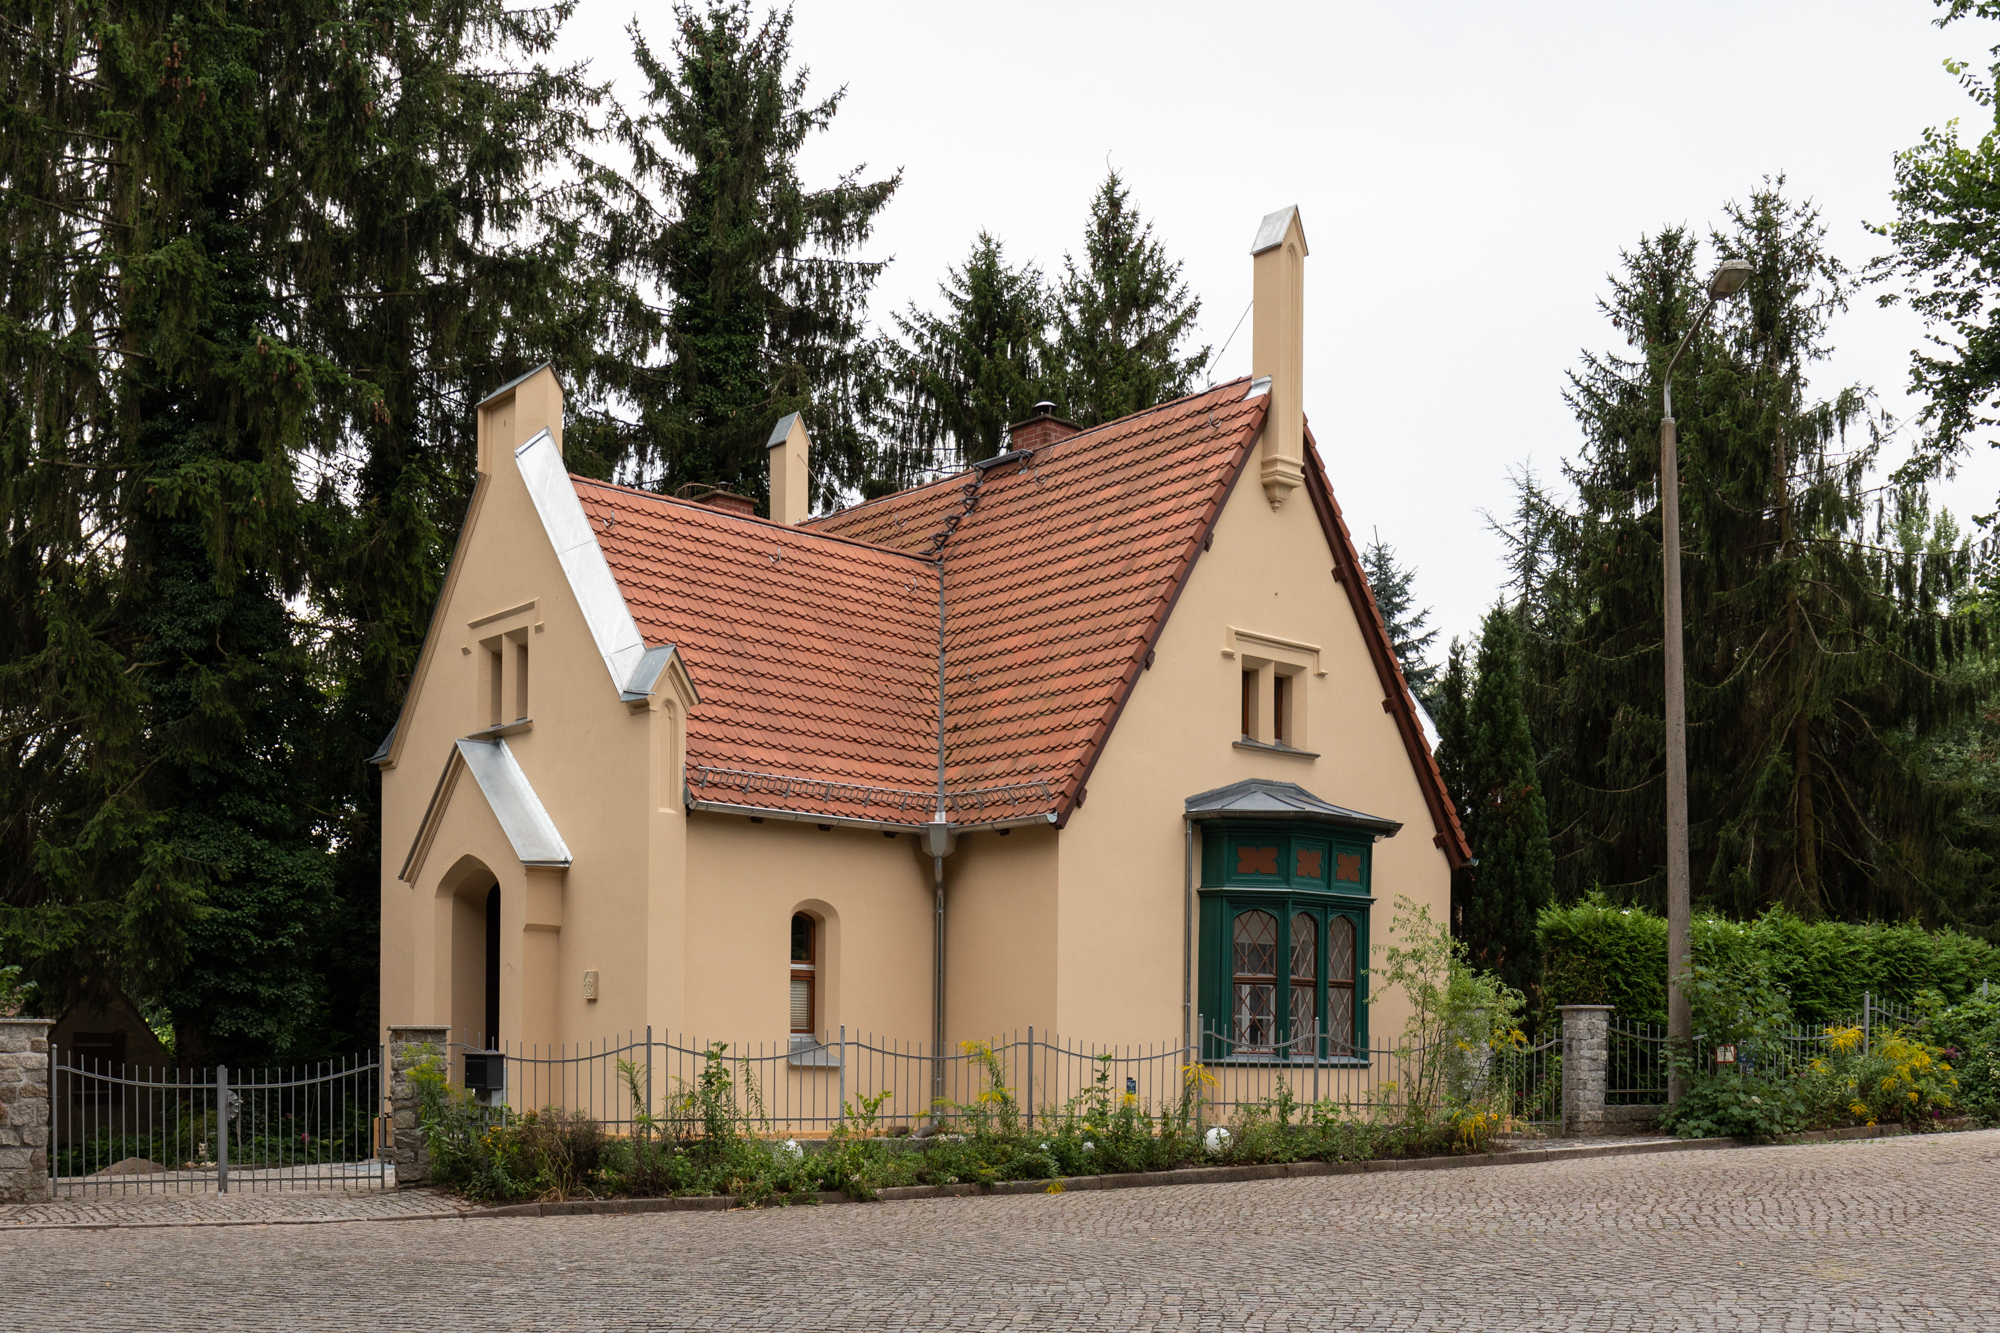 House in Klein Glienicke - a former East German enclave separated from West Berlin by the Berlin Wall and only accessible with special permission